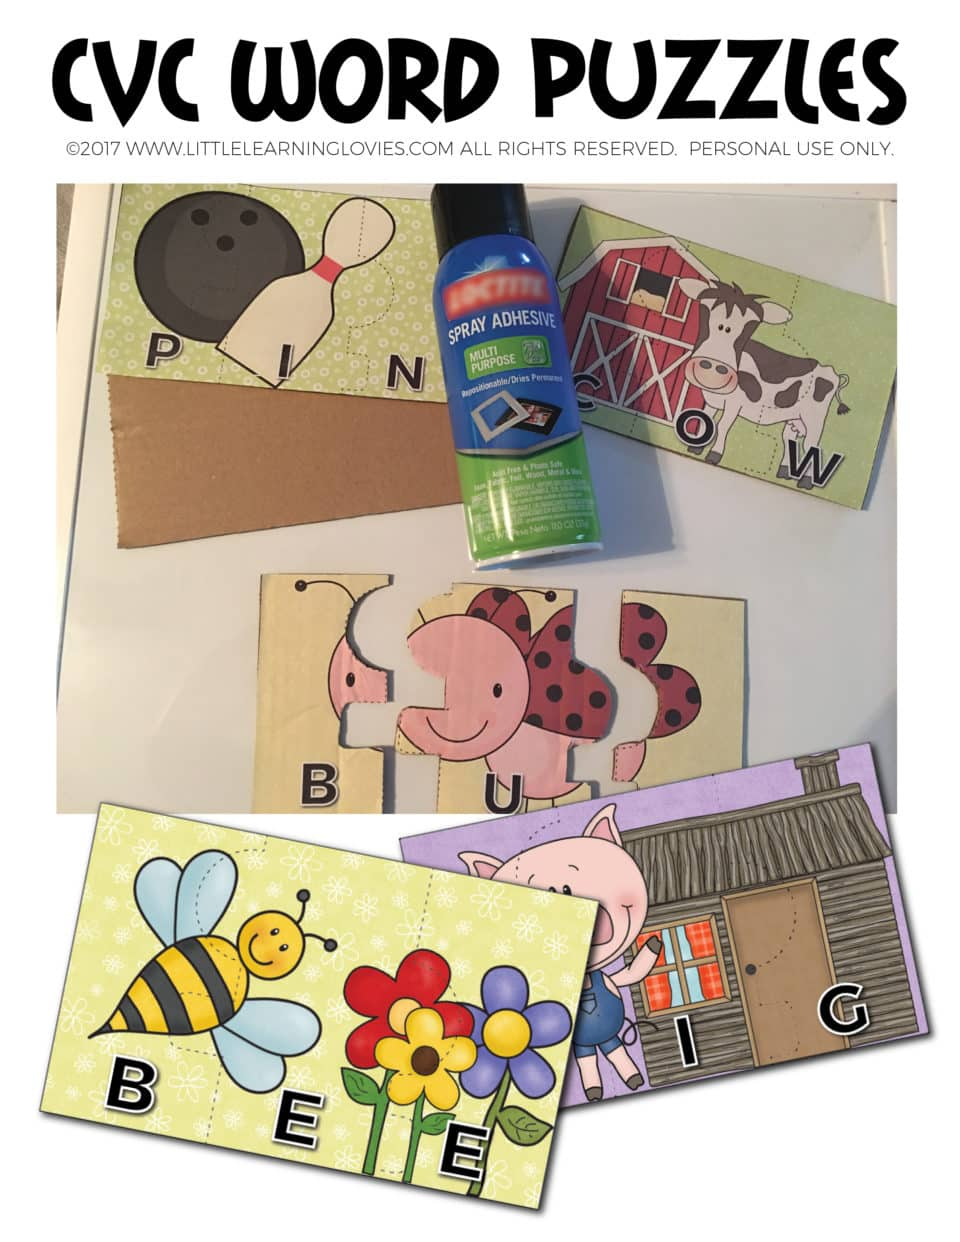 CVC Word Puzzles - FREE from Little Learning Lovies - Print and play right away!